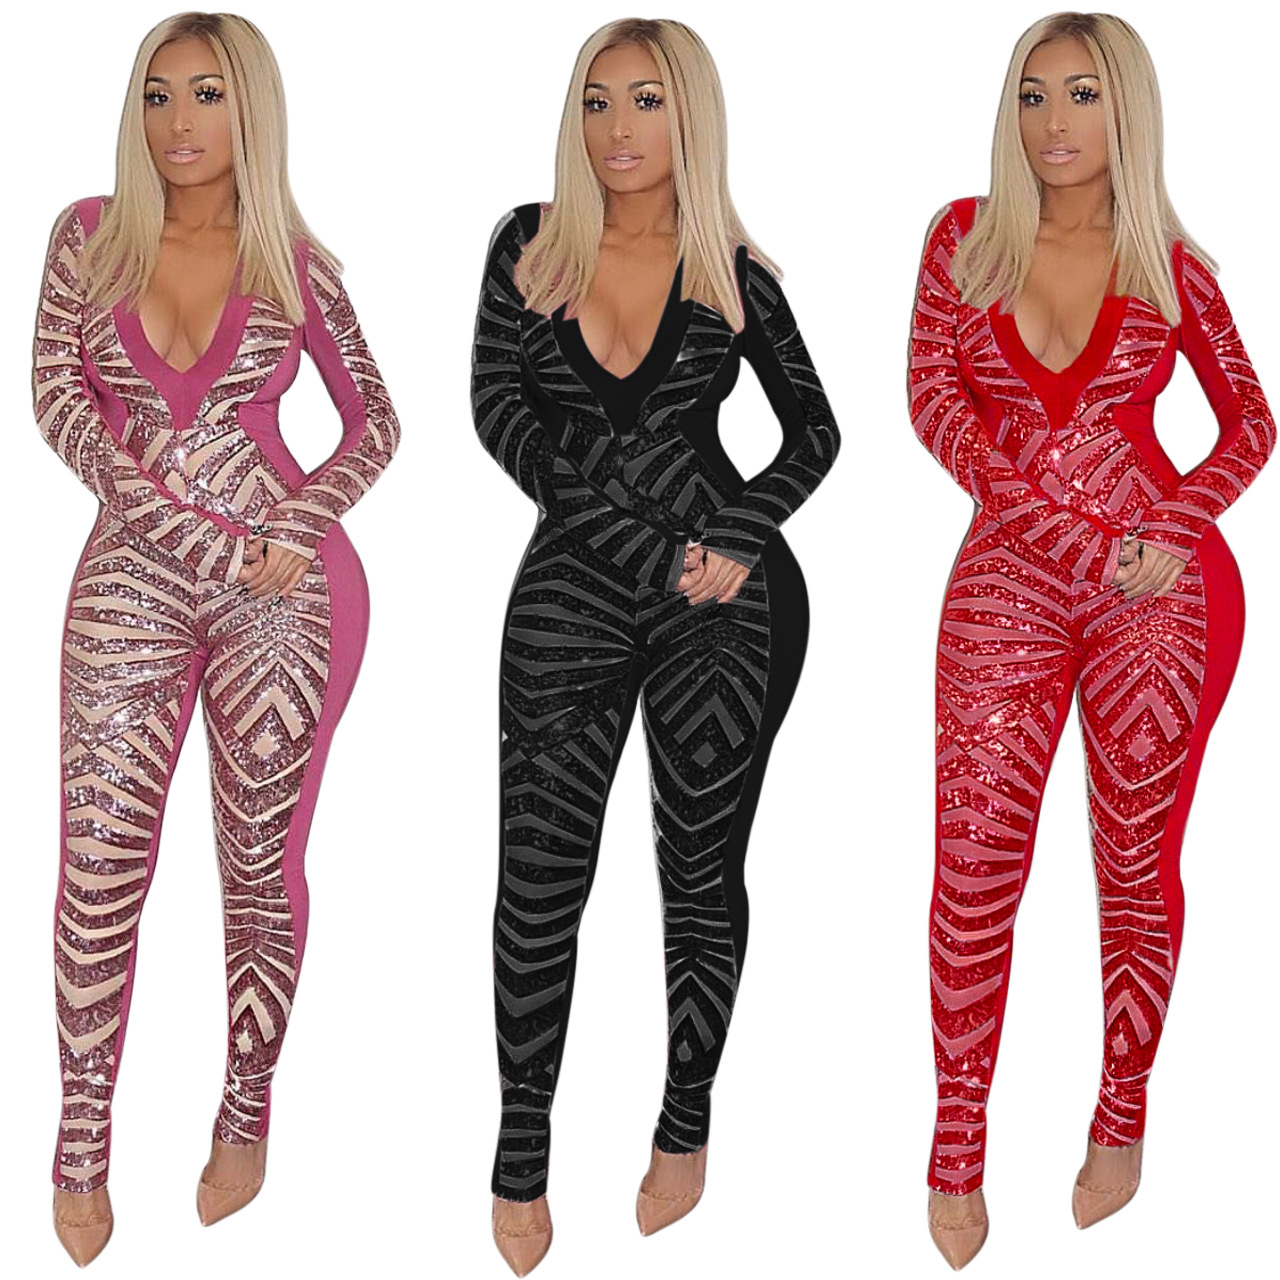 Autumn Women Sequin Jumpsuit Sexy V Neck Mesh Sheer Sparkly Bodysuit Glitter Long Sleeve Romper Christmas Party Clubwear M829